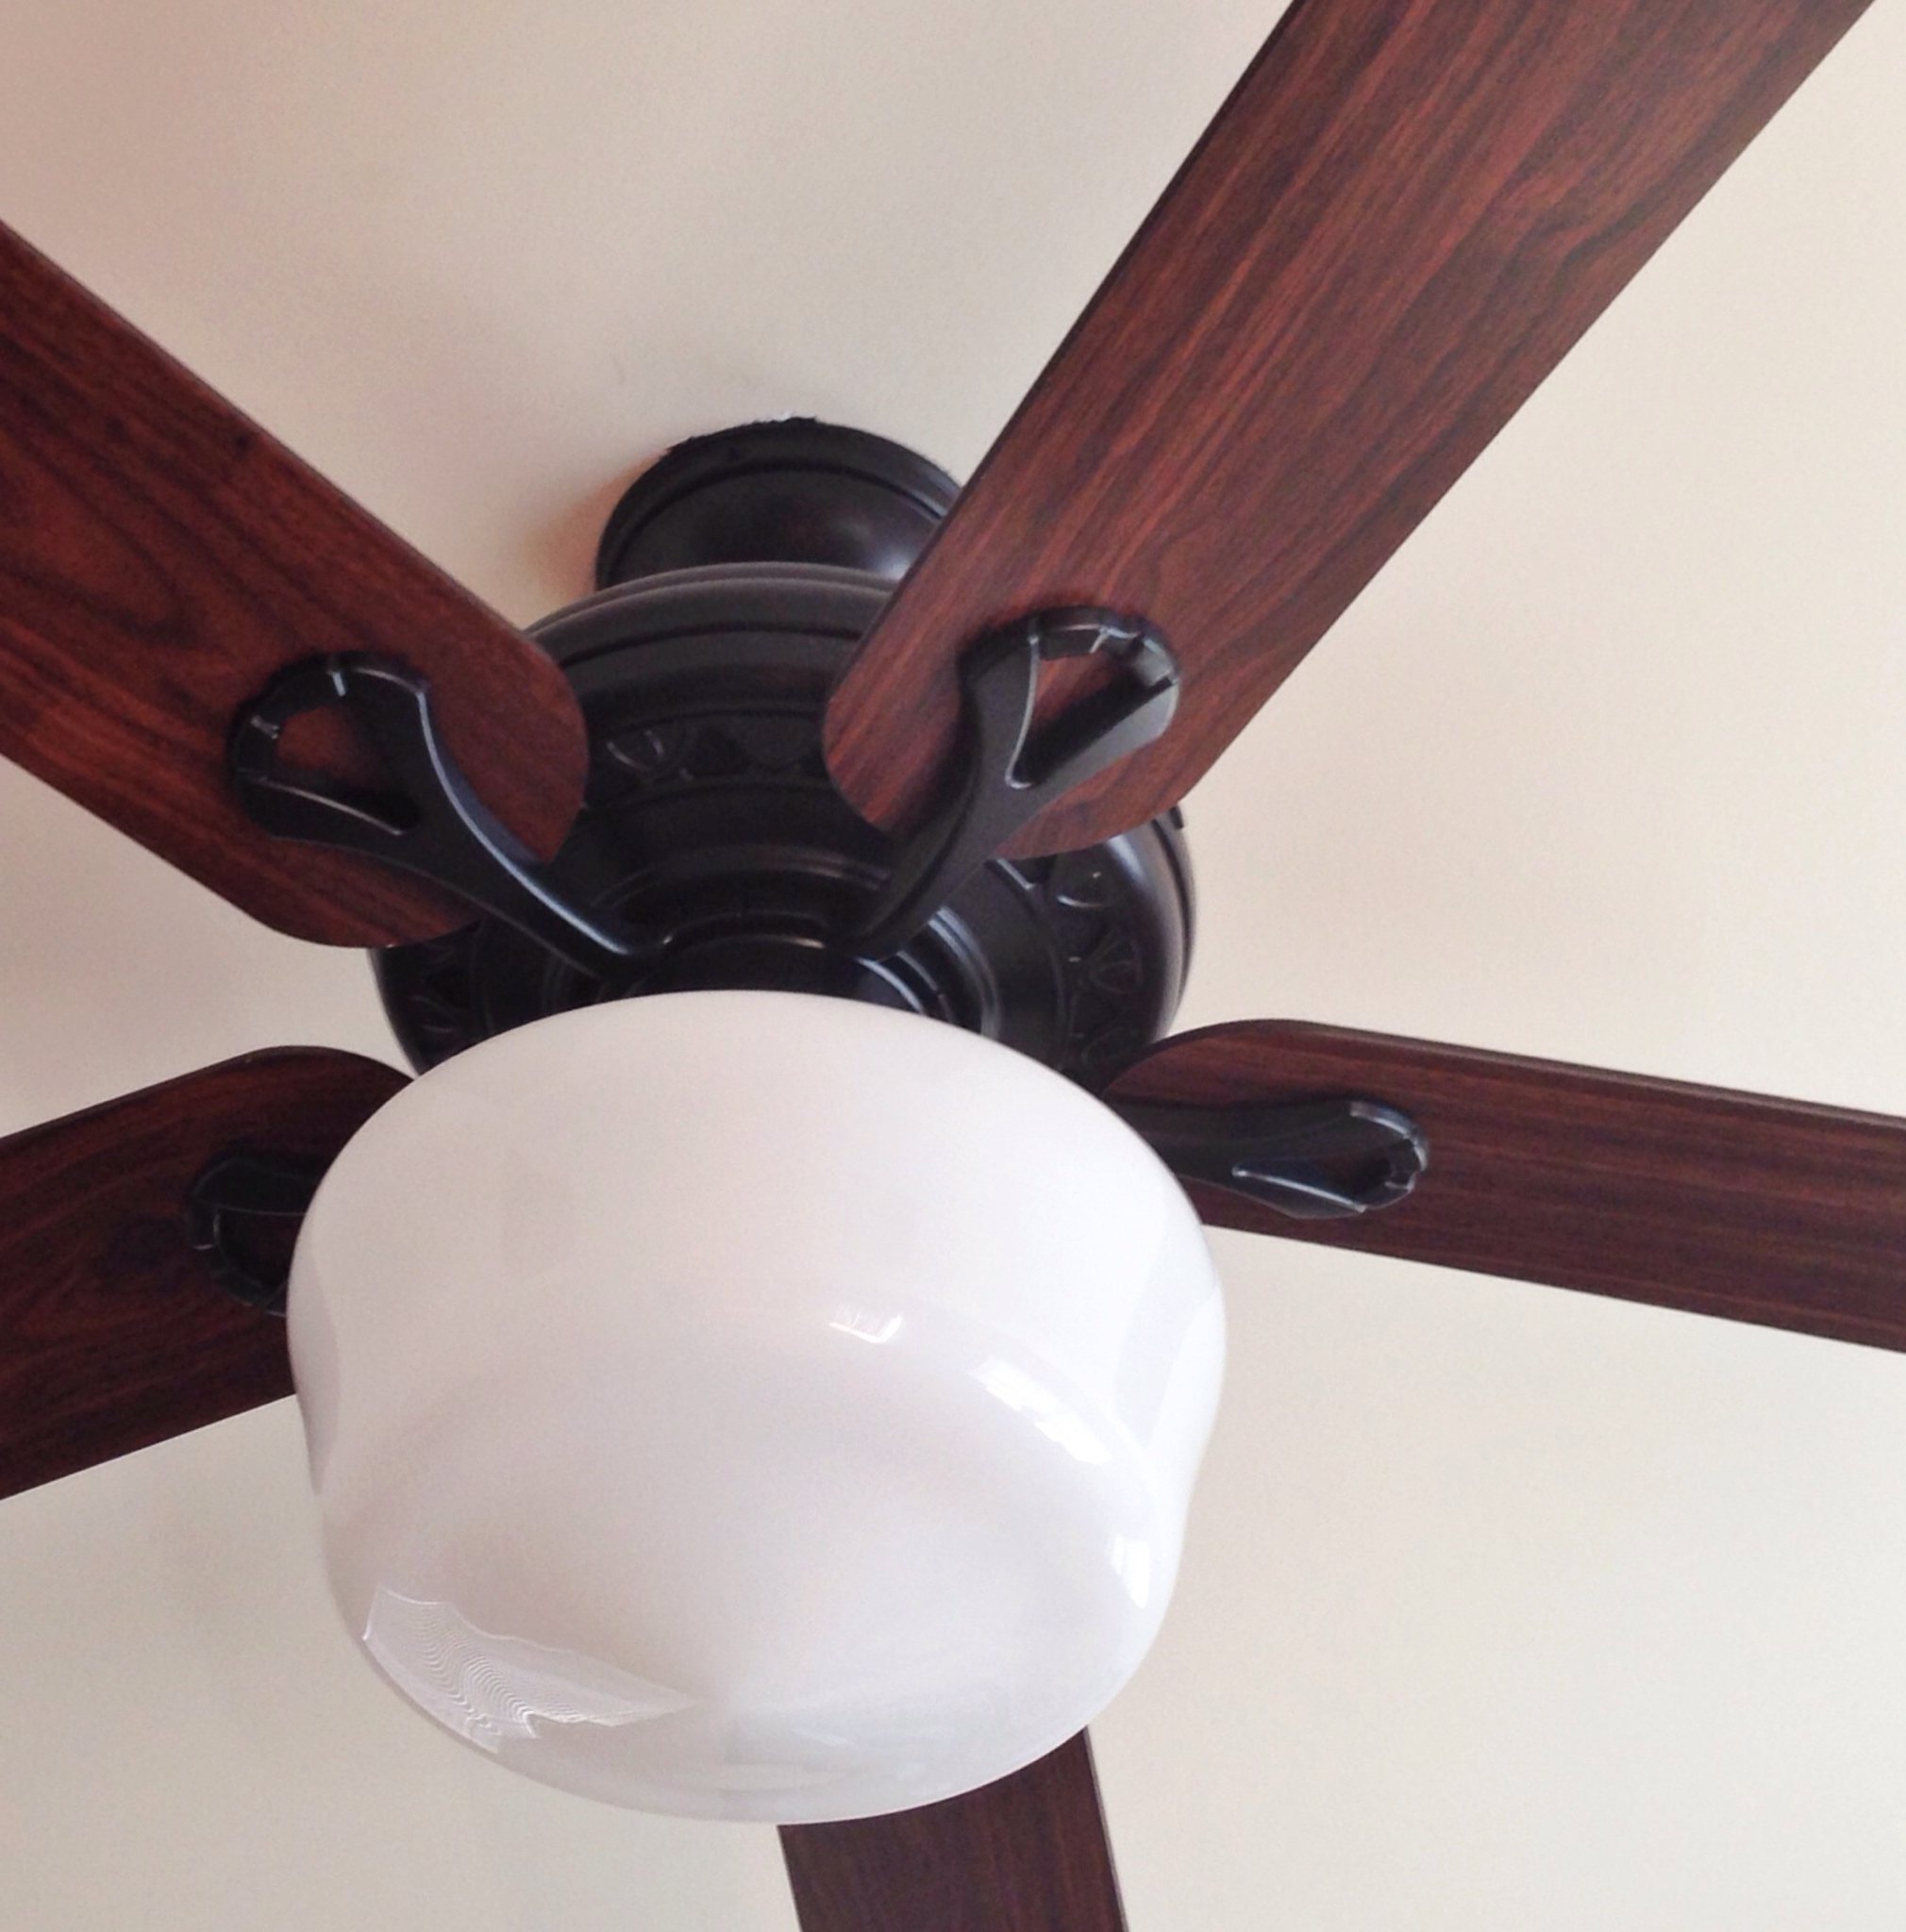 Outdoor Ceiling Fans With Schoolhouse Light For Most Up To Date Ceiling Fan With Schoolhouse Light Luxury Home Depot Ceiling Fans (View 20 of 20)